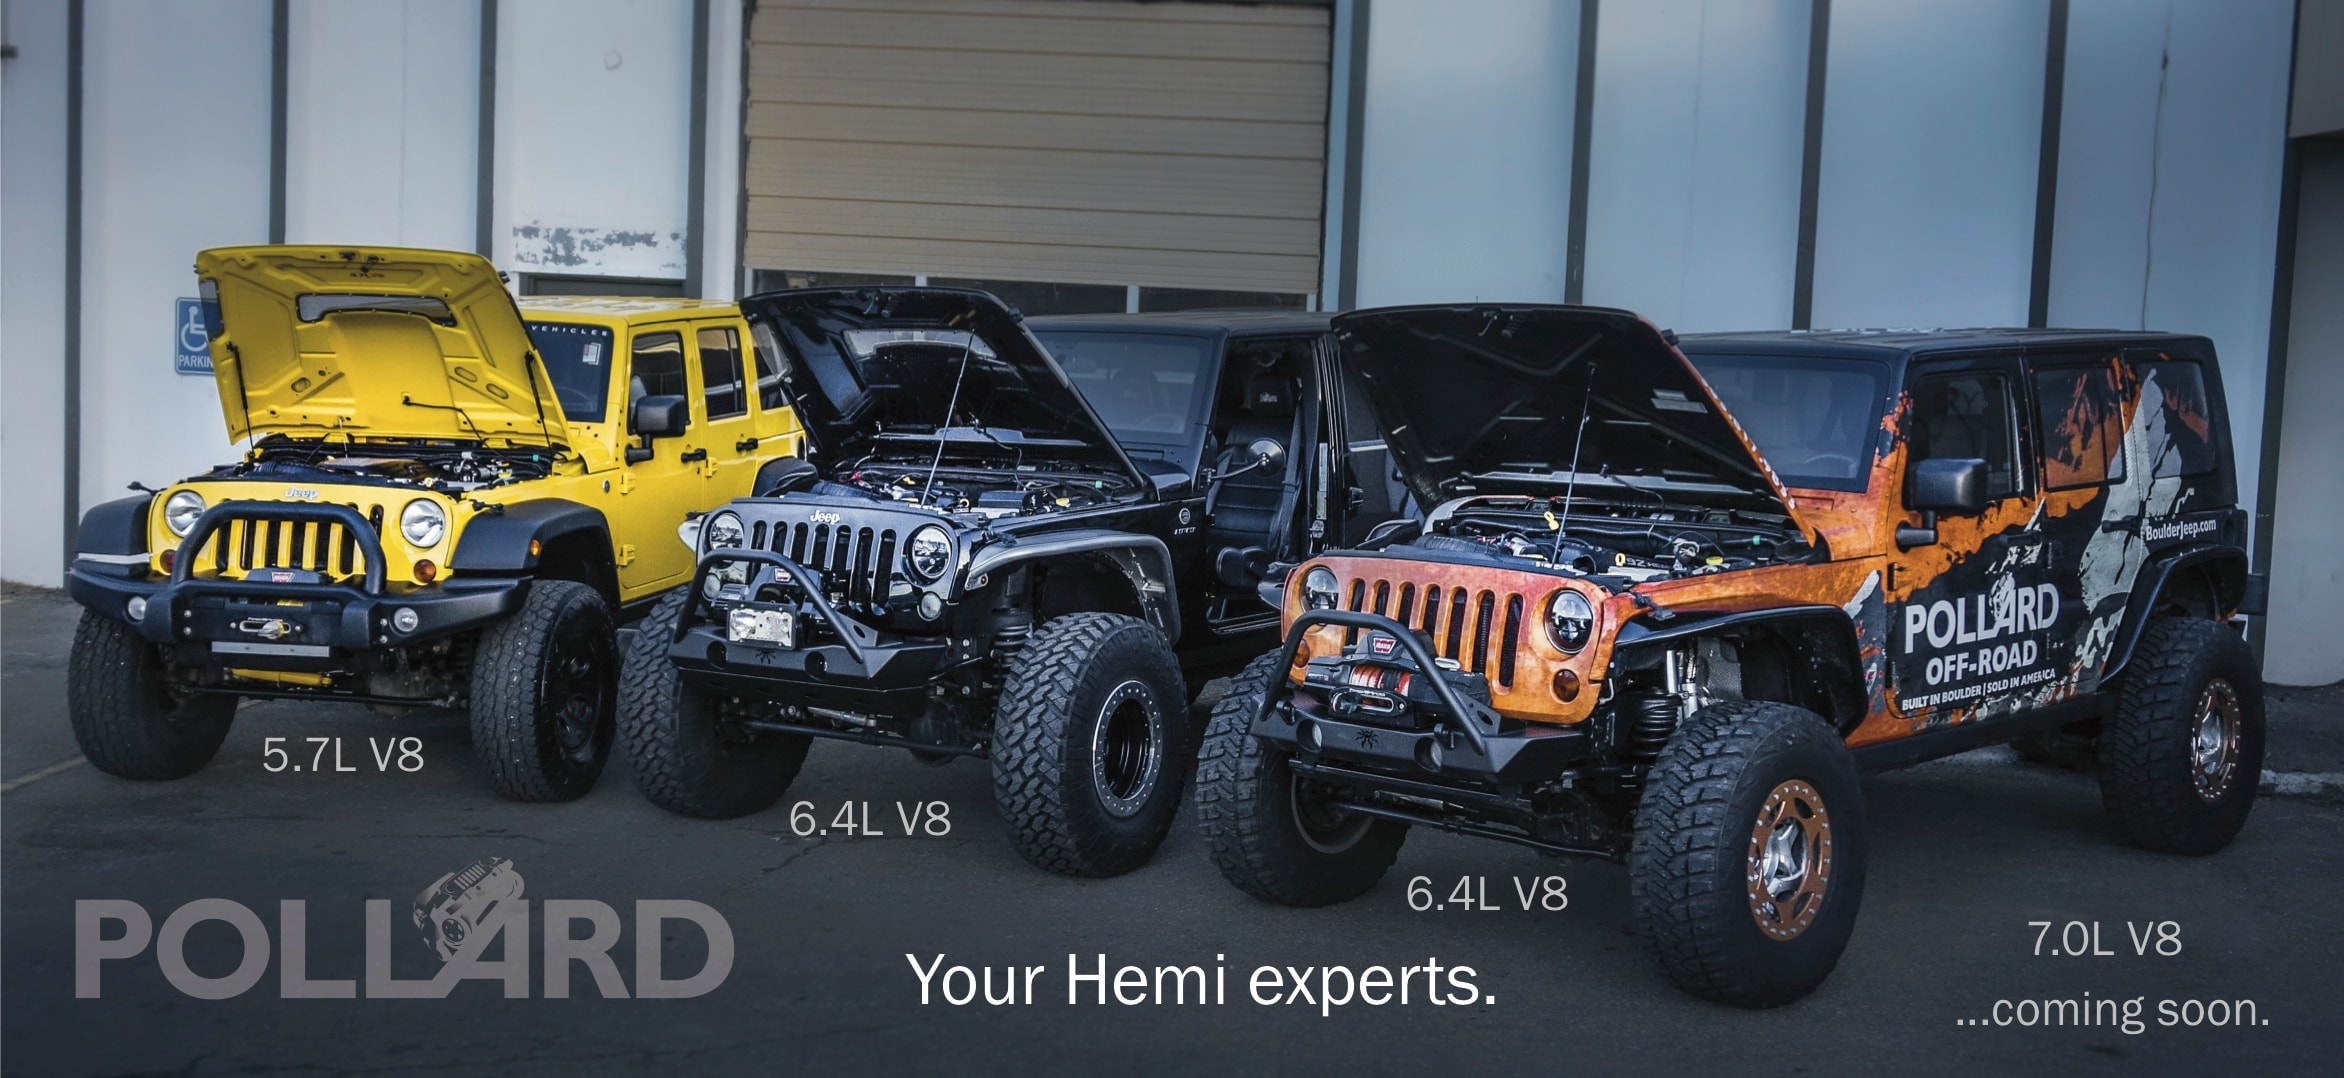 About Pollard Jeep Dealership